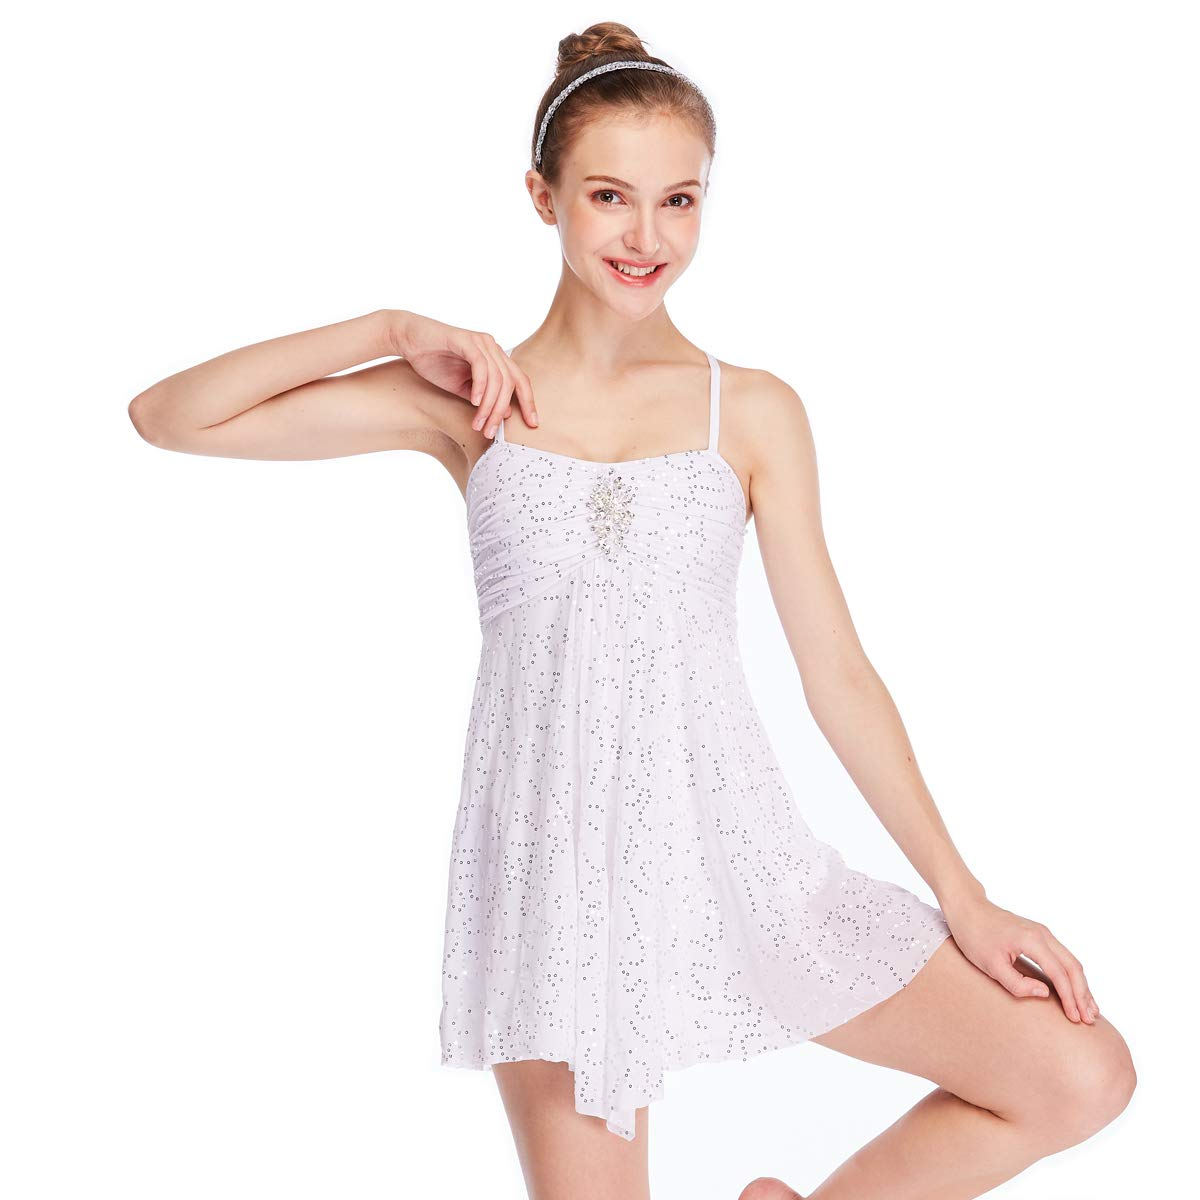 df9af7f8f MiDee Dance Costume Lyrical Dress Full Sequins Camisole Ice Skating Dresses  (MA, White)